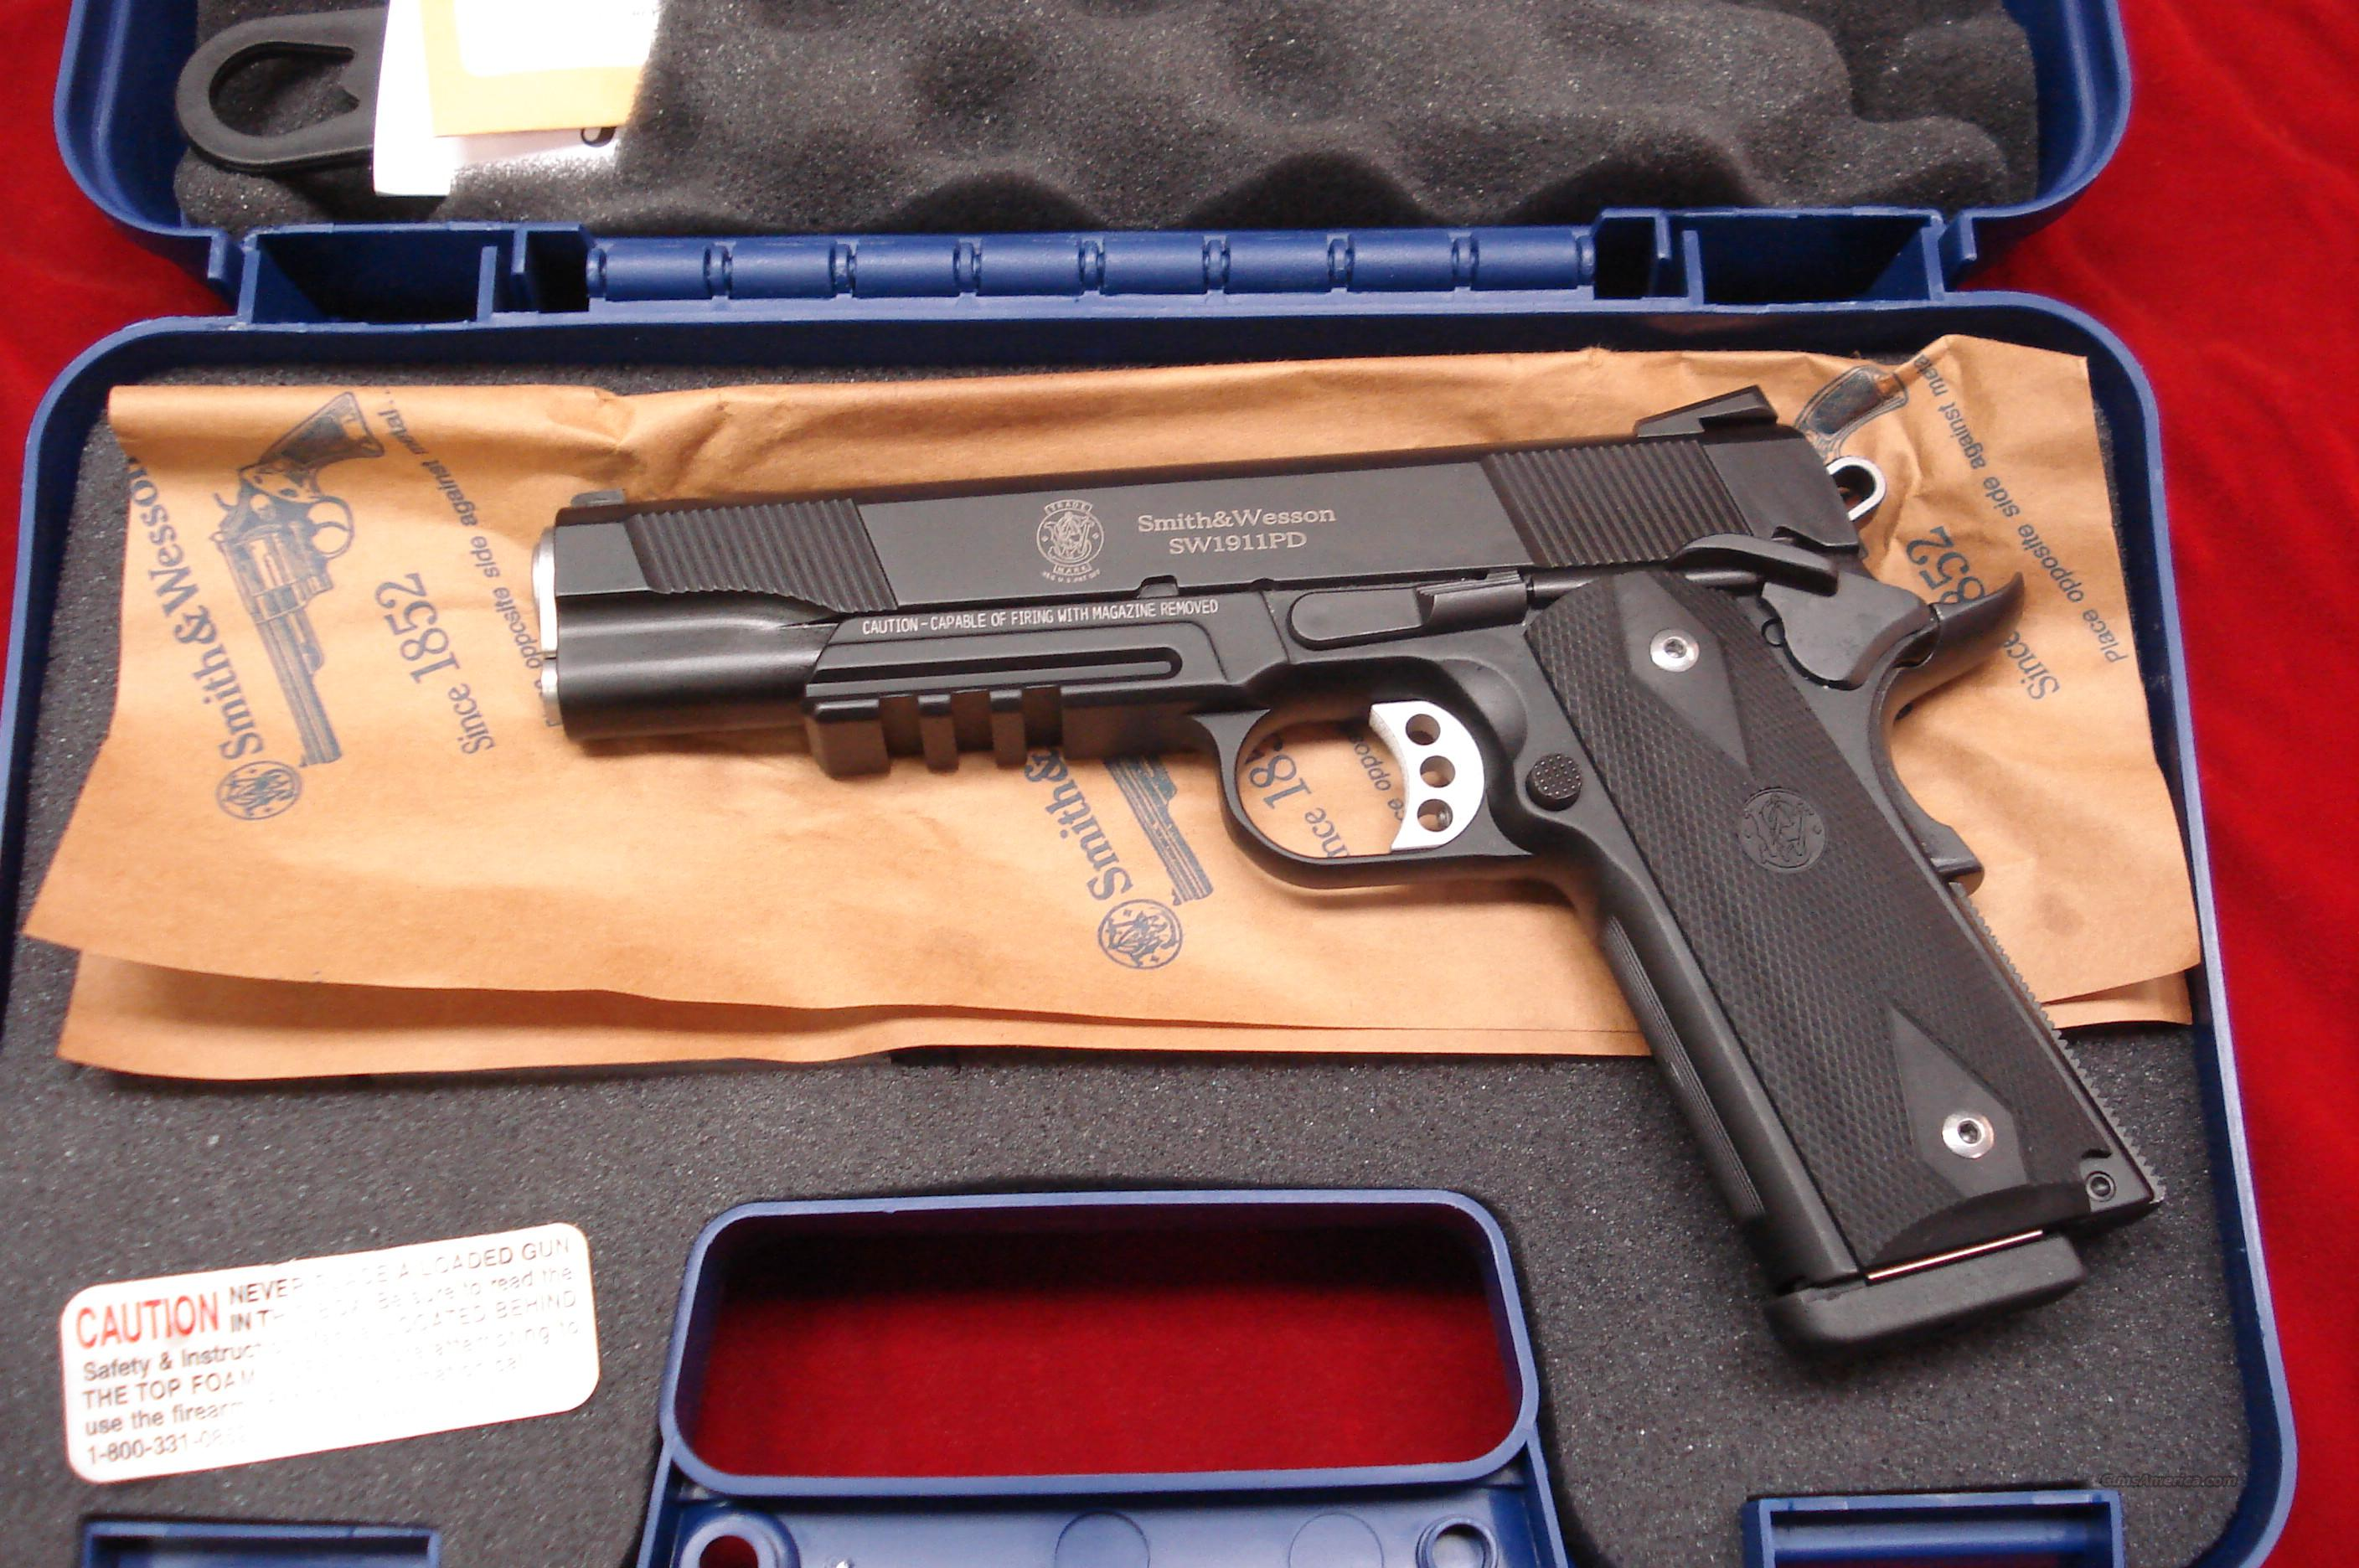 SMITH AND WESSON SW1911PD BLUE SCANDIUM 45ACP WITH TAC RAIL  NEW   Guns > Pistols > Smith & Wesson Pistols - Autos > Steel Frame